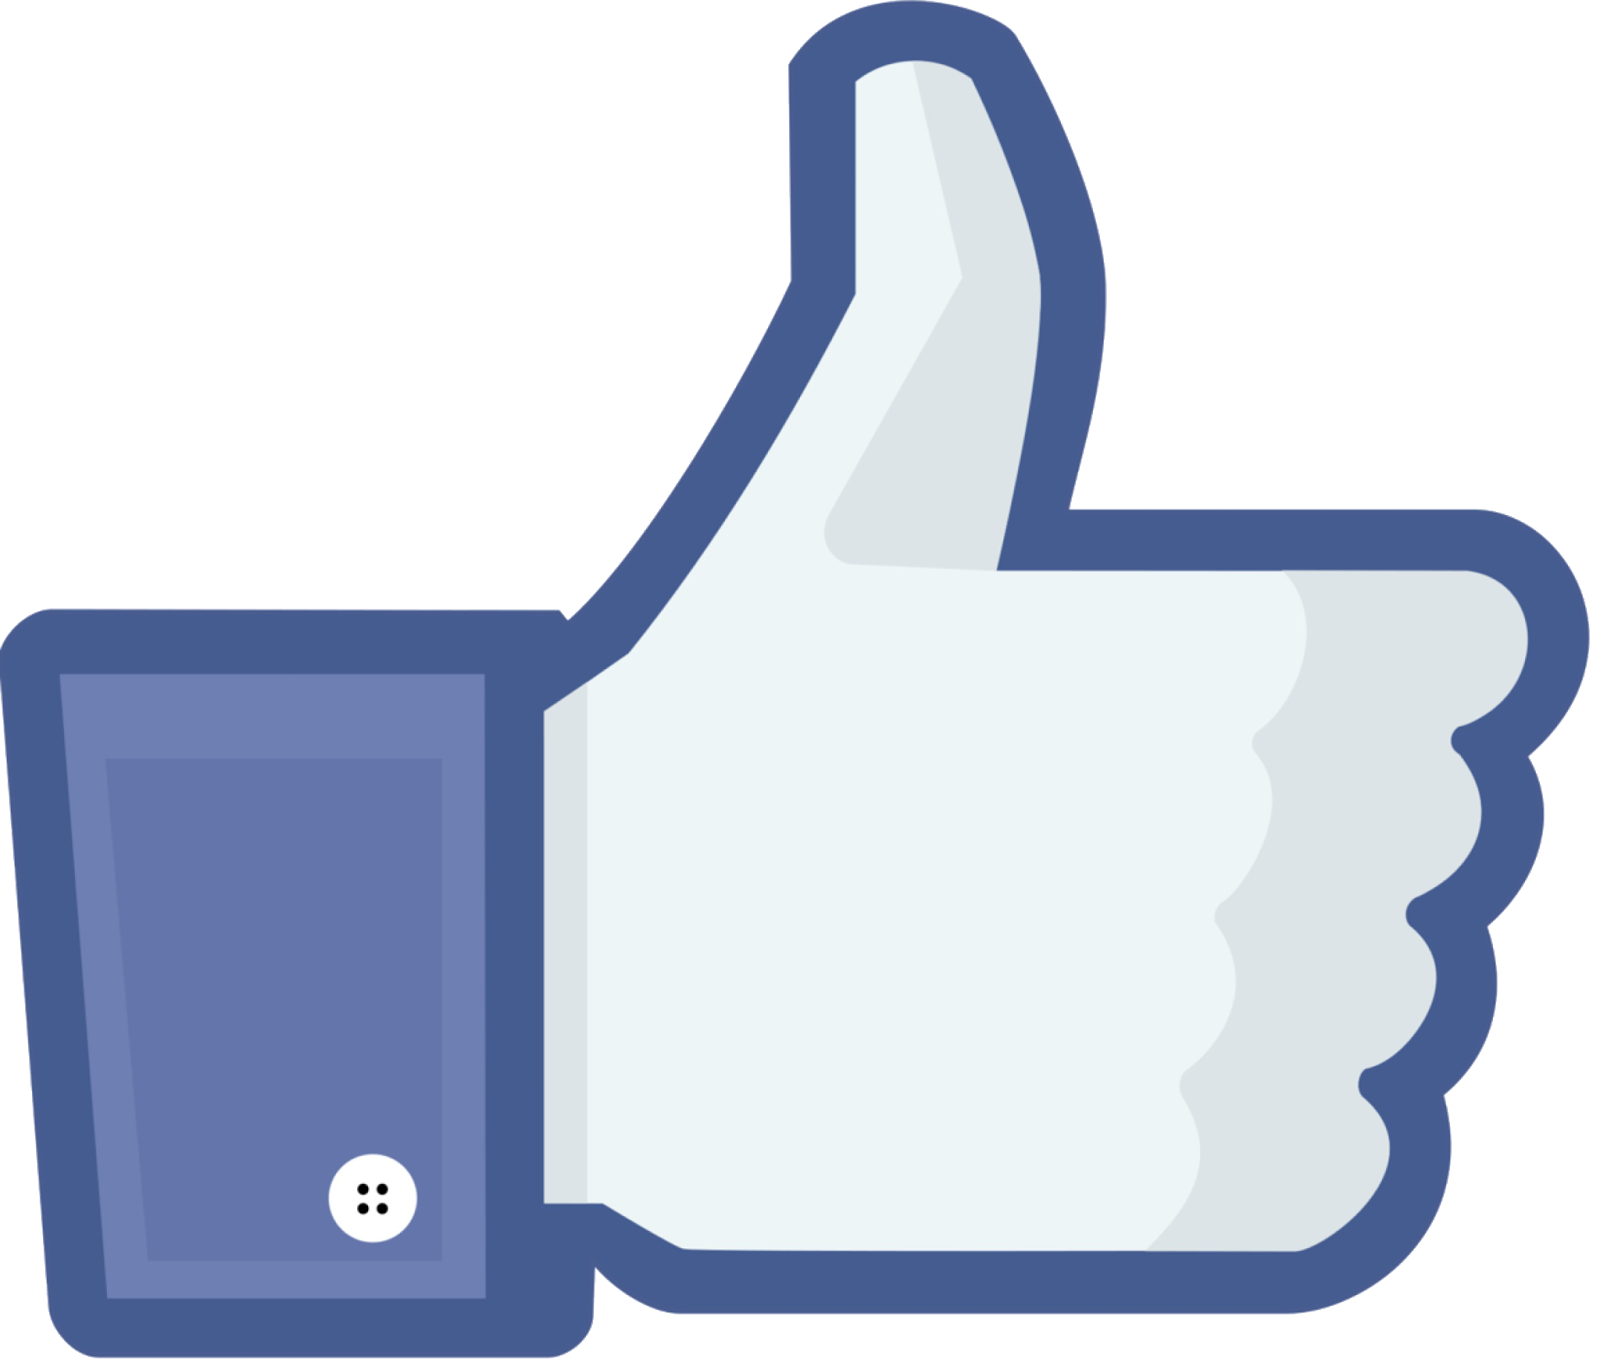 facebook logo like share png transparent background.